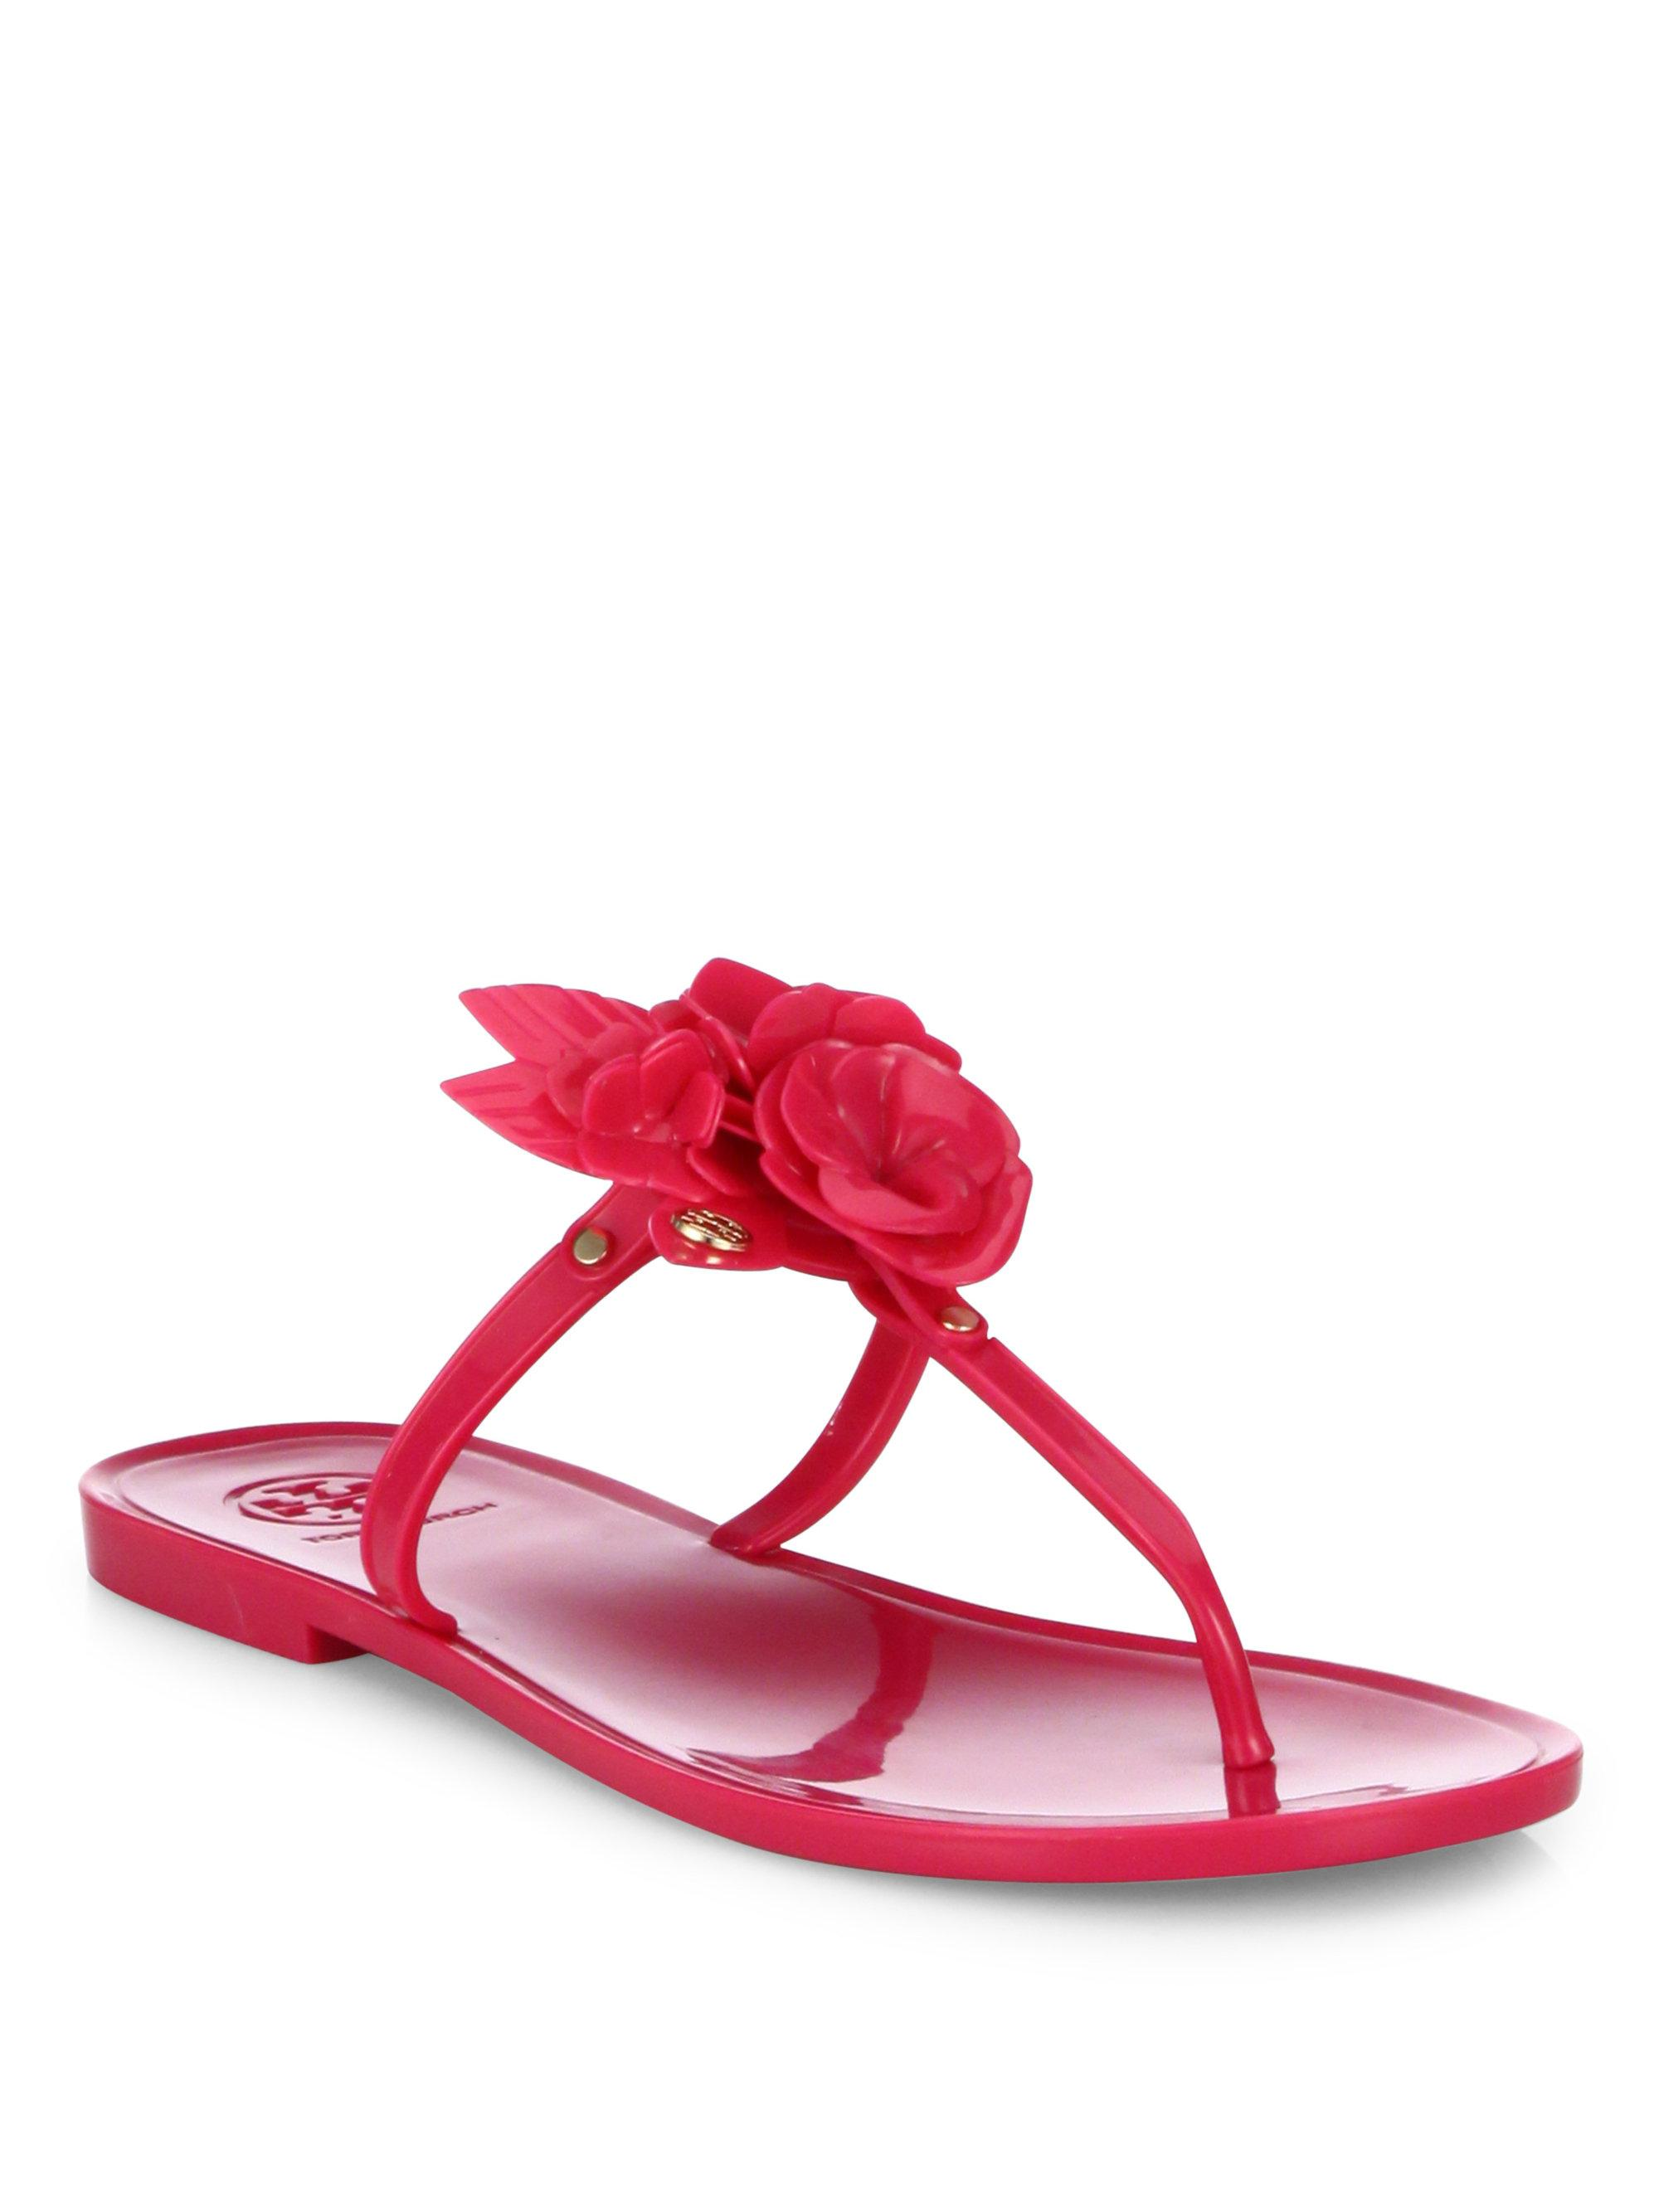 23ccbf36876e Lyst - Tory Burch Blossom Jelly Thong Sandals in Pink